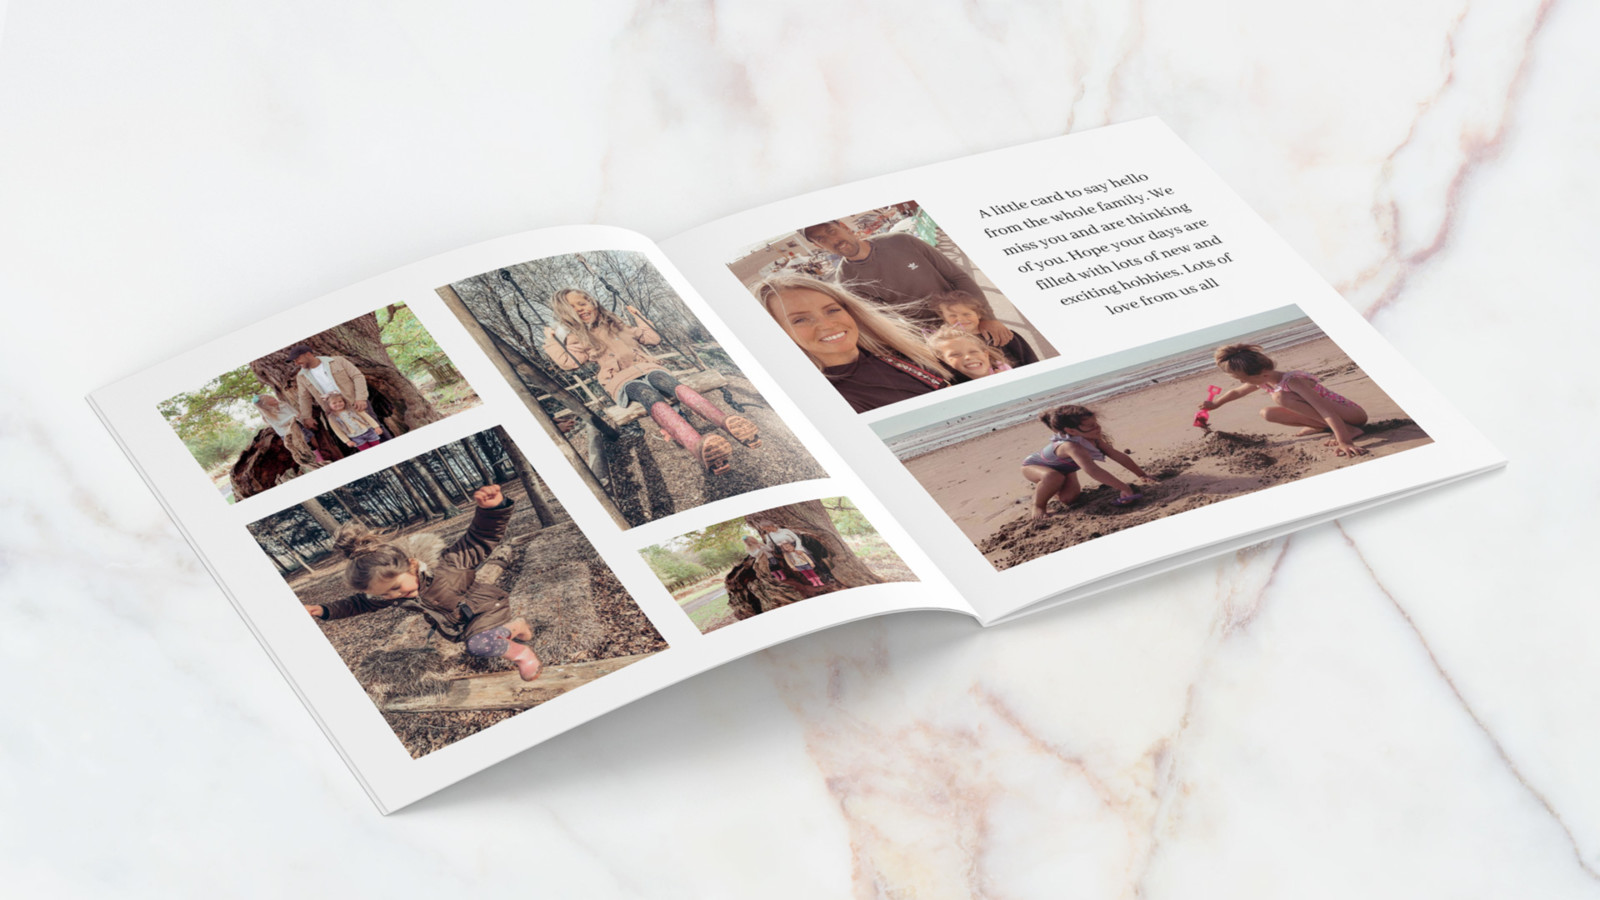 This is an internal view of the softcover photo book